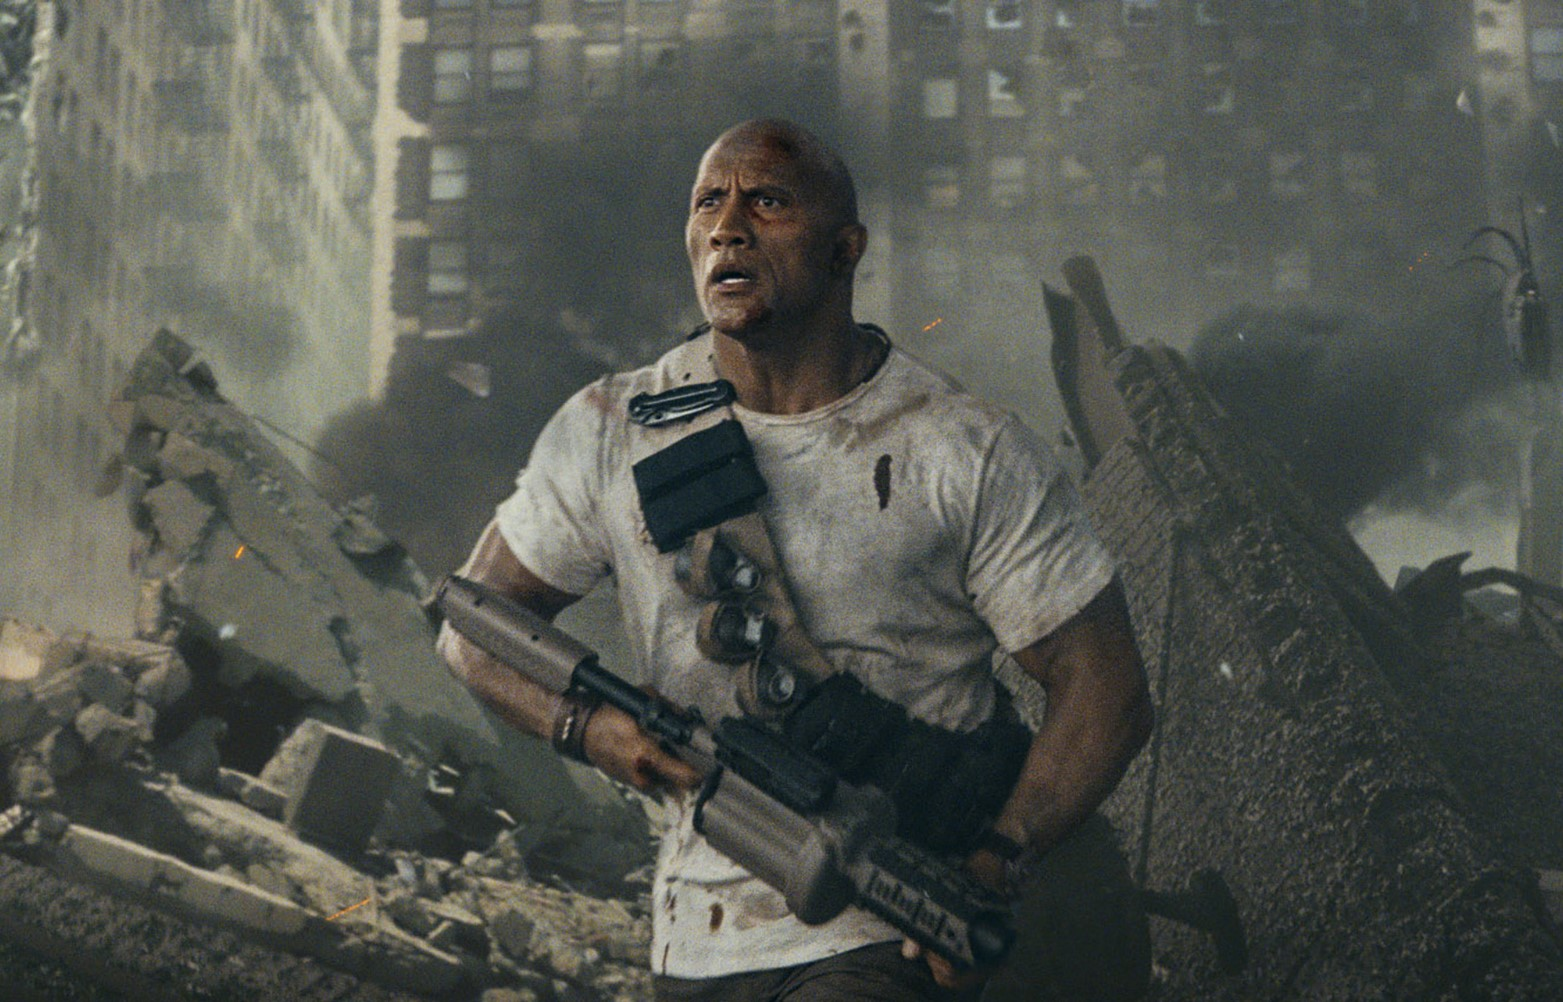 Dwayne Johnson enfrenta animais gigantes no 1º trailer de